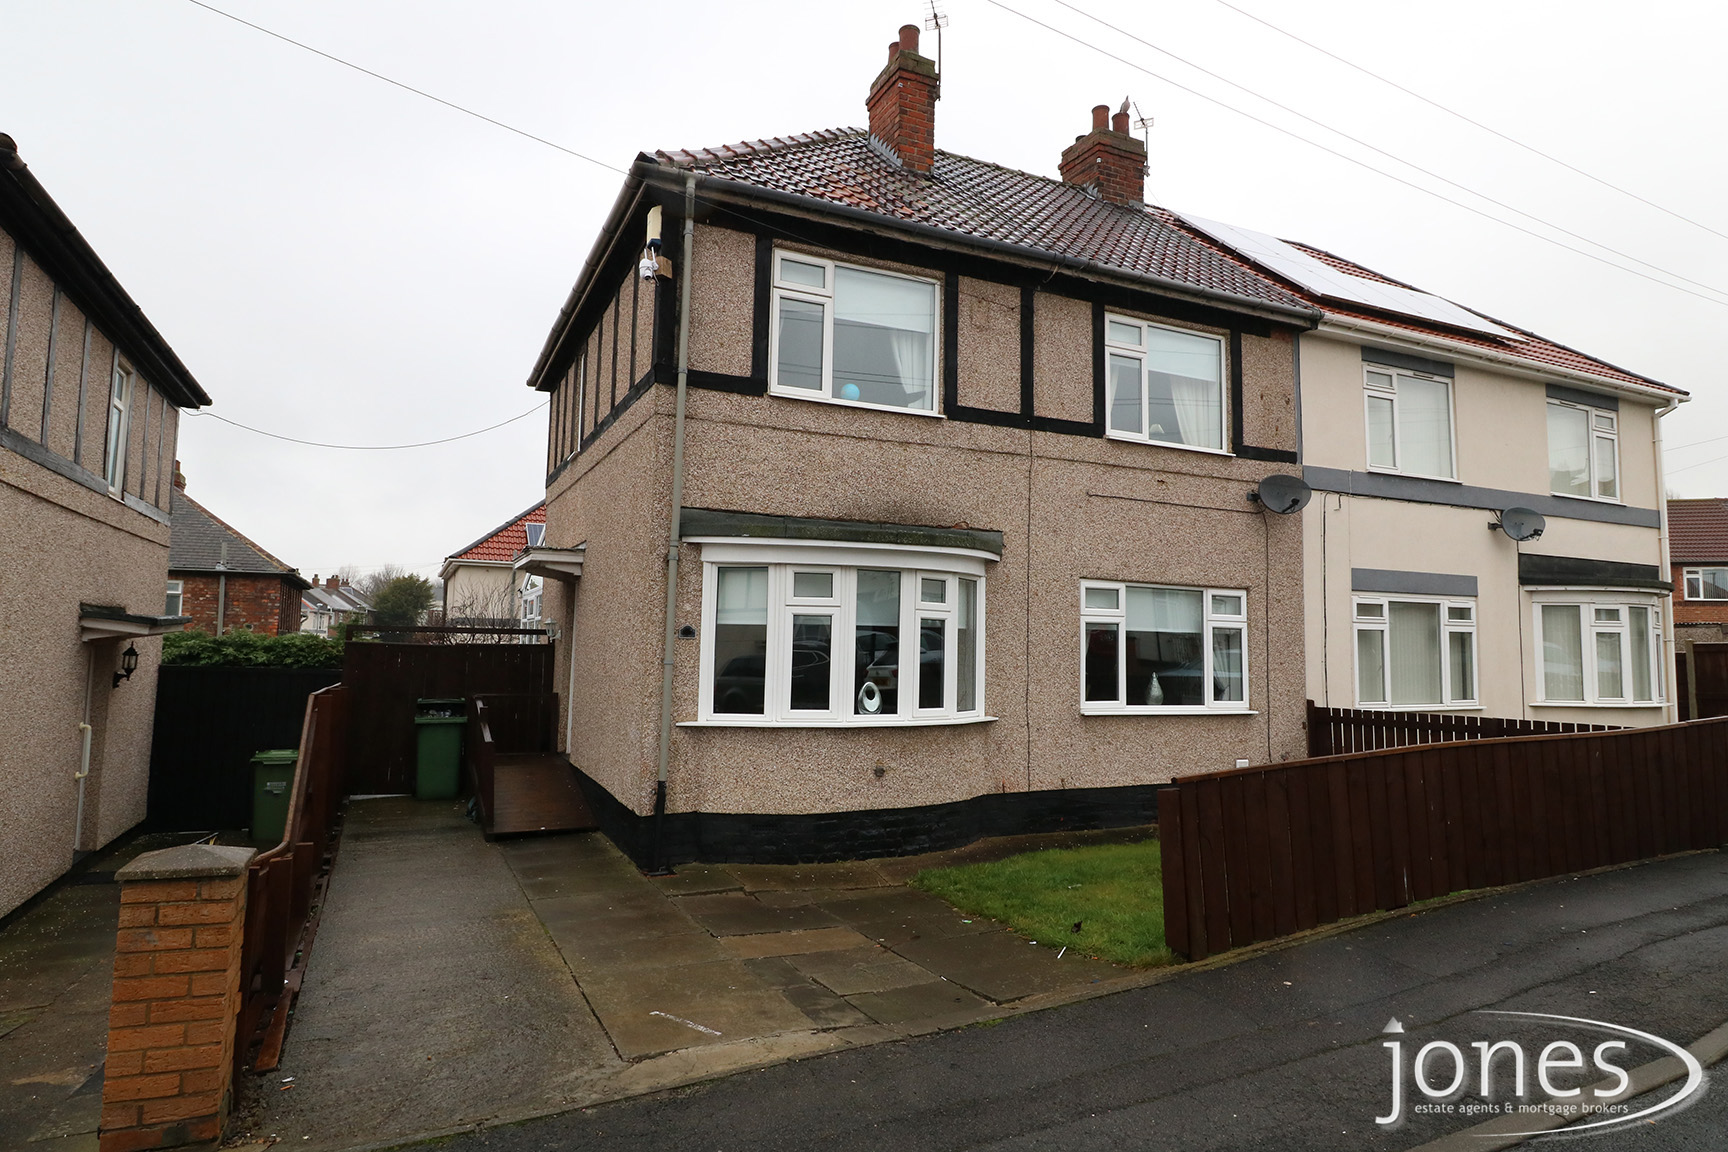 Home for Sale Let - Photo 01 Grange Avenue, Billingham, TS23 1JH